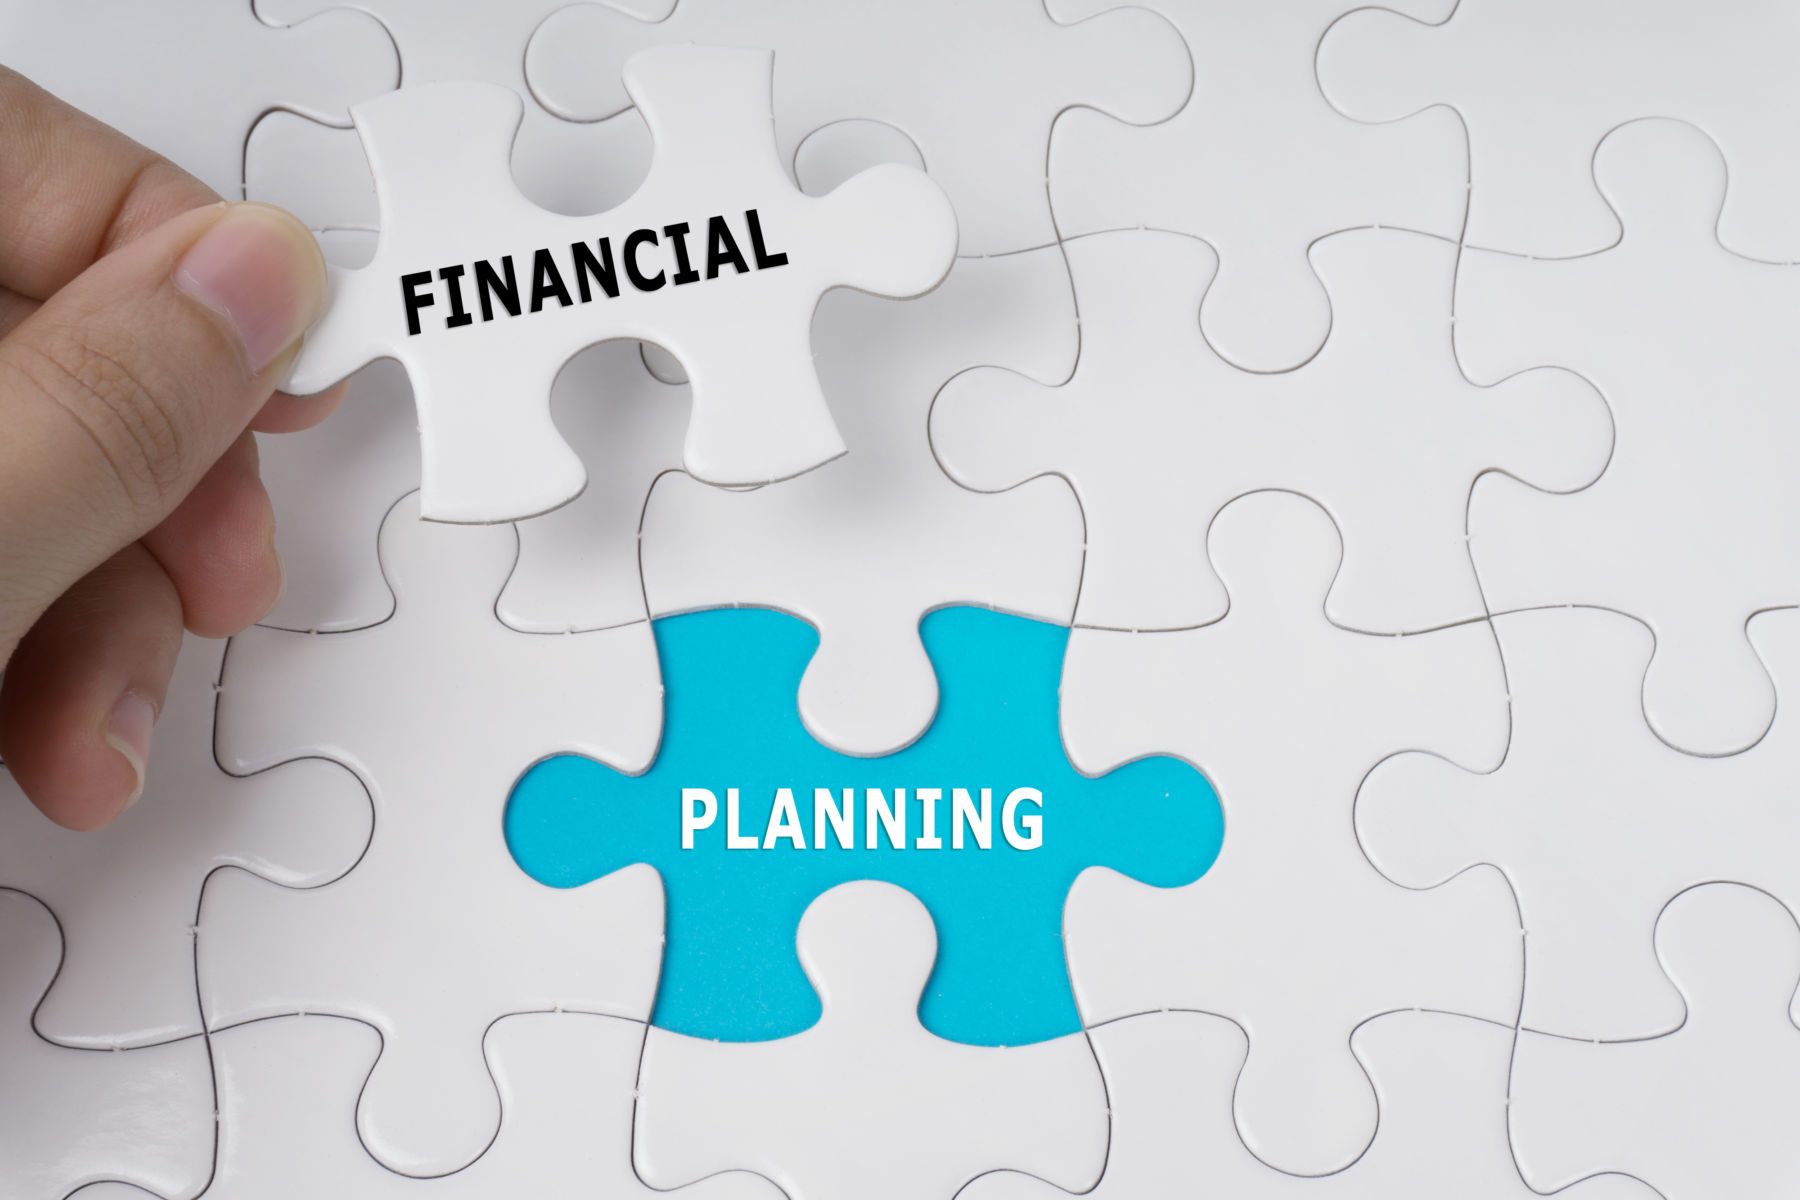 Explain the Financial Planning Process